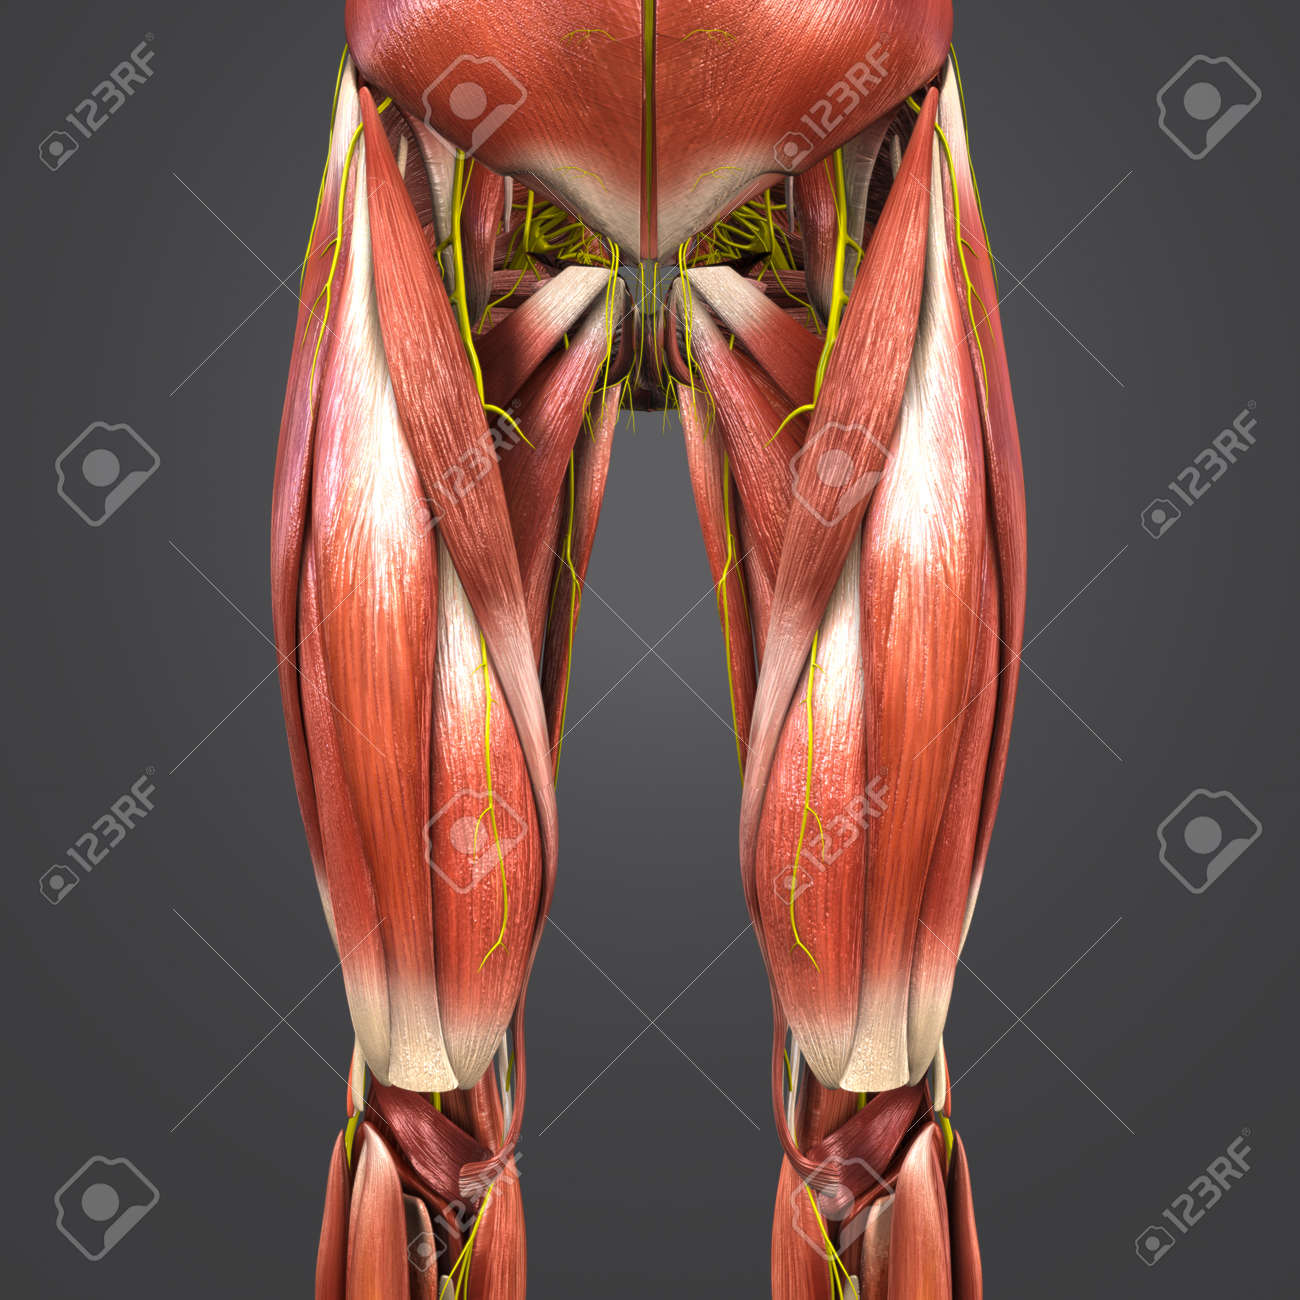 Muscles Anatomy With Nerves Of Hip And Thigh Anterior View Stock